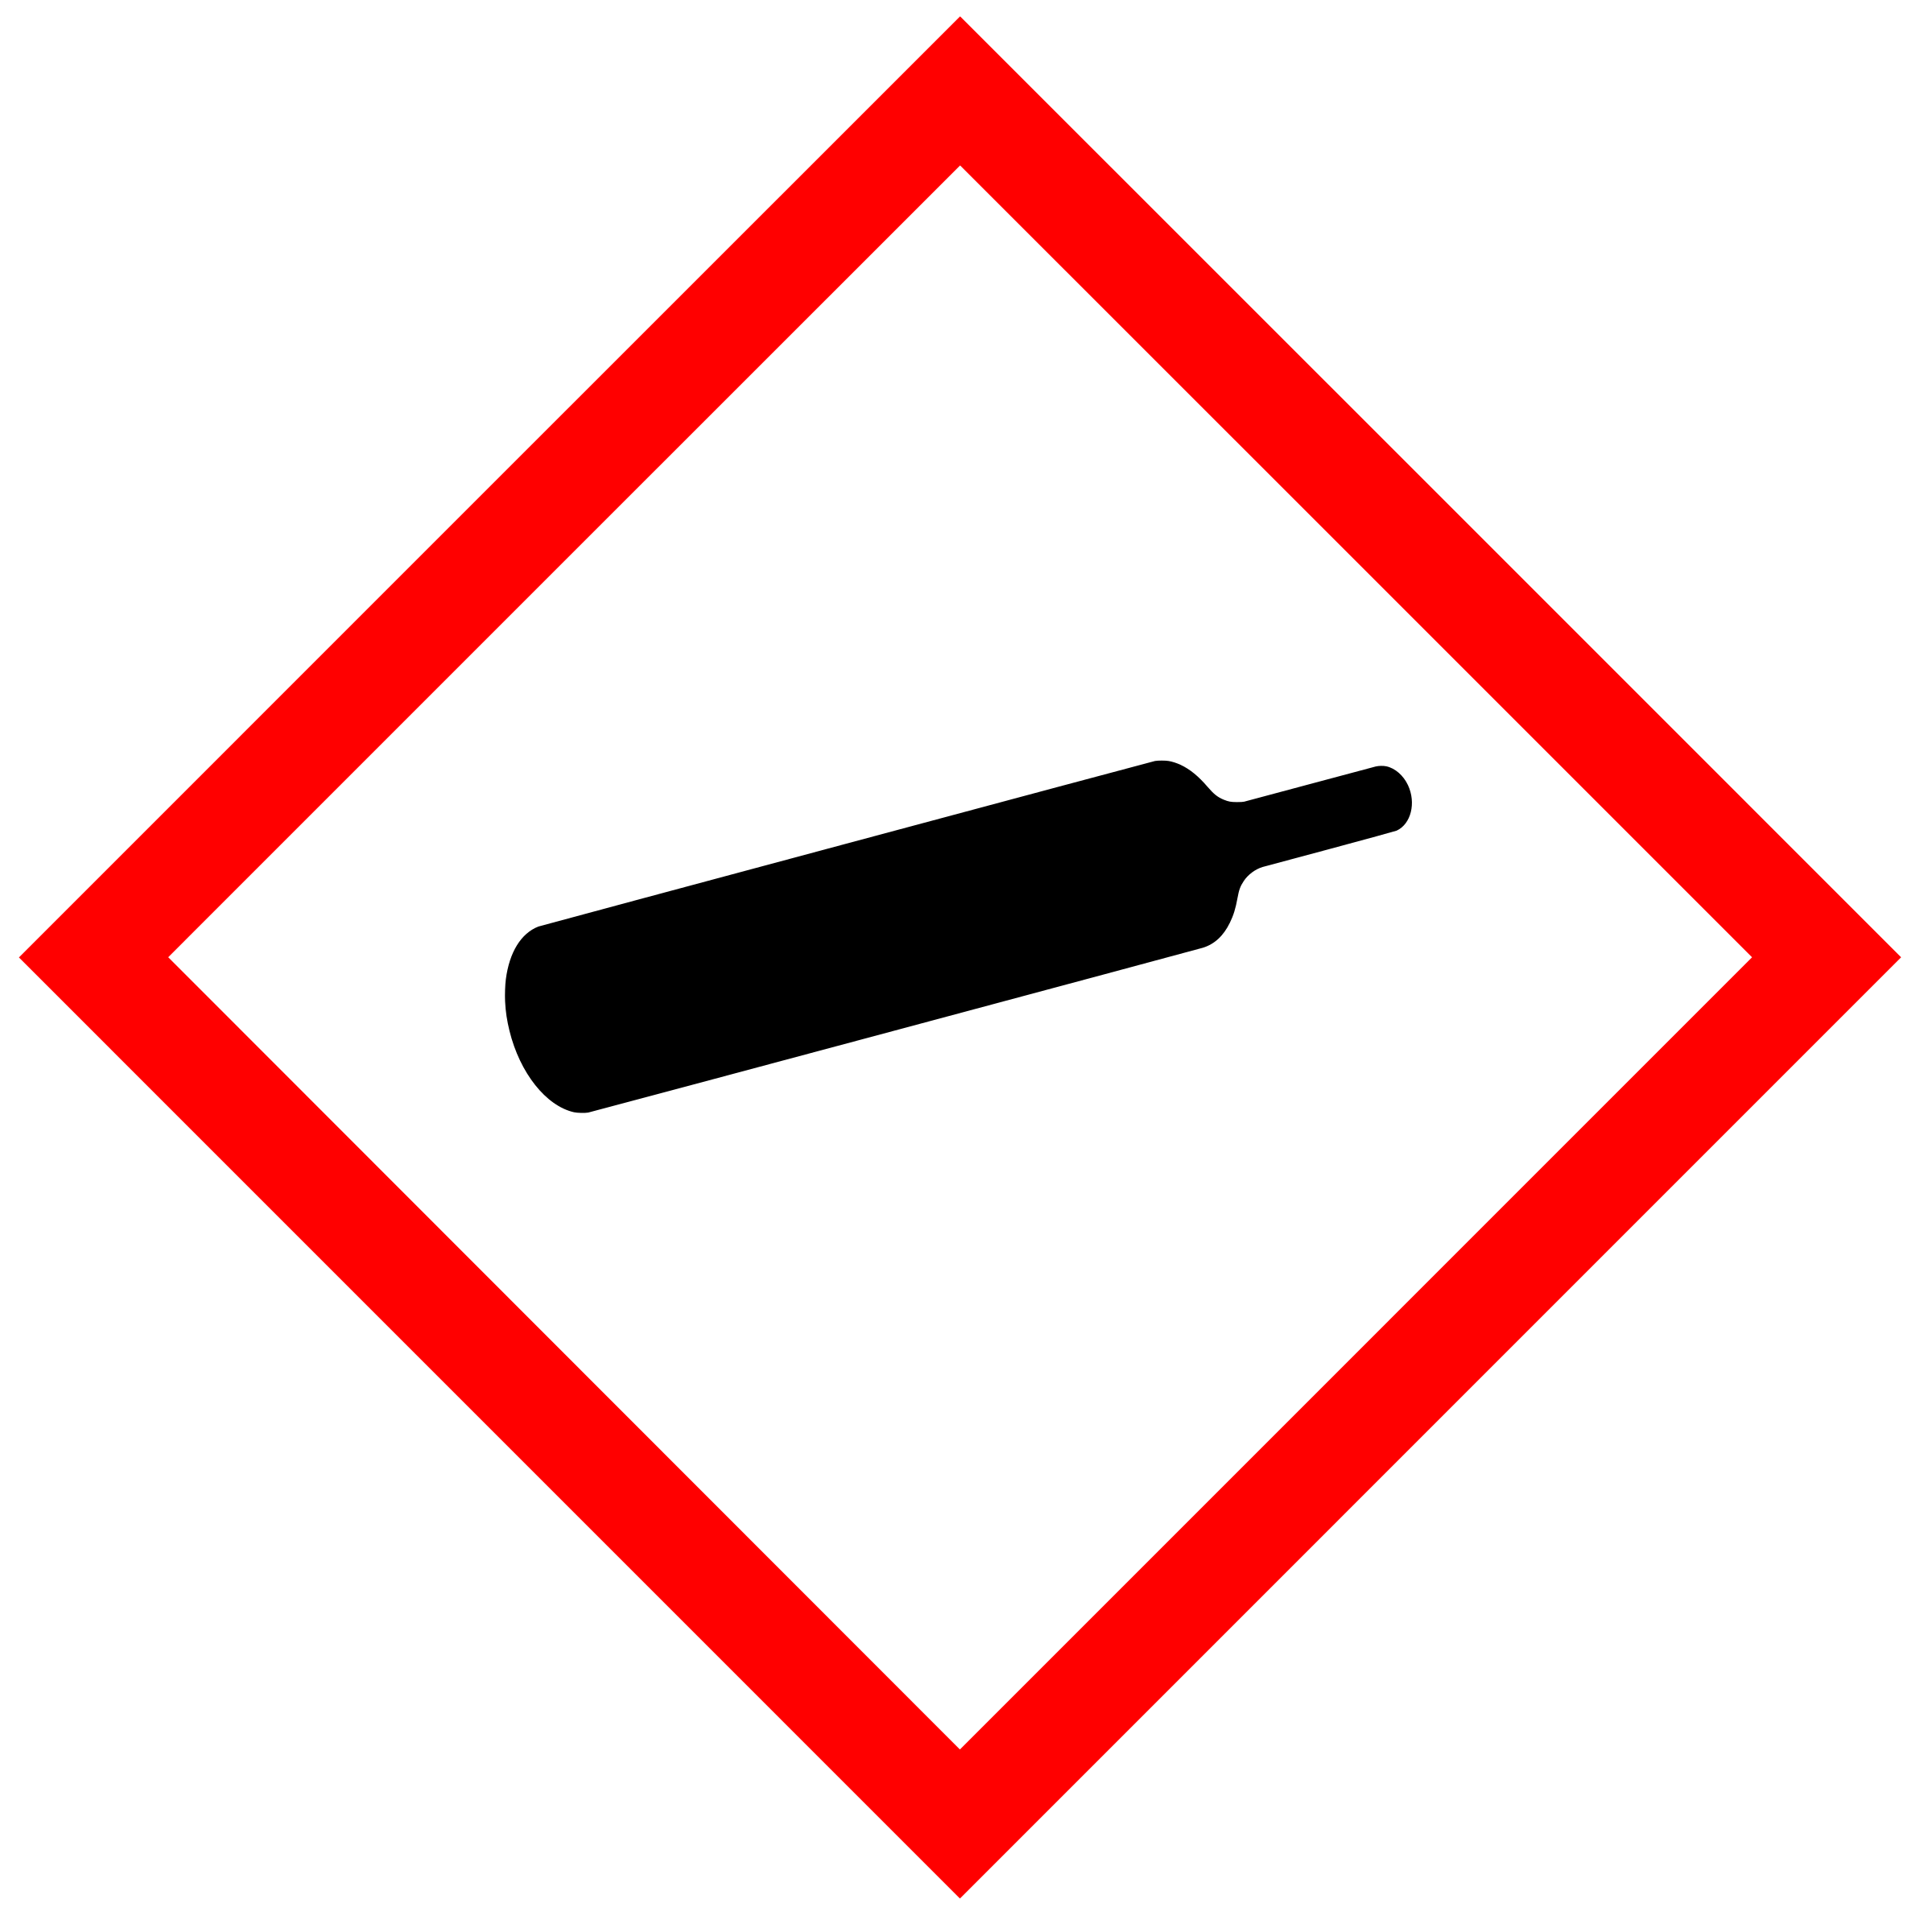 Gas clipart gas canister. Ghs pictogram for bottles